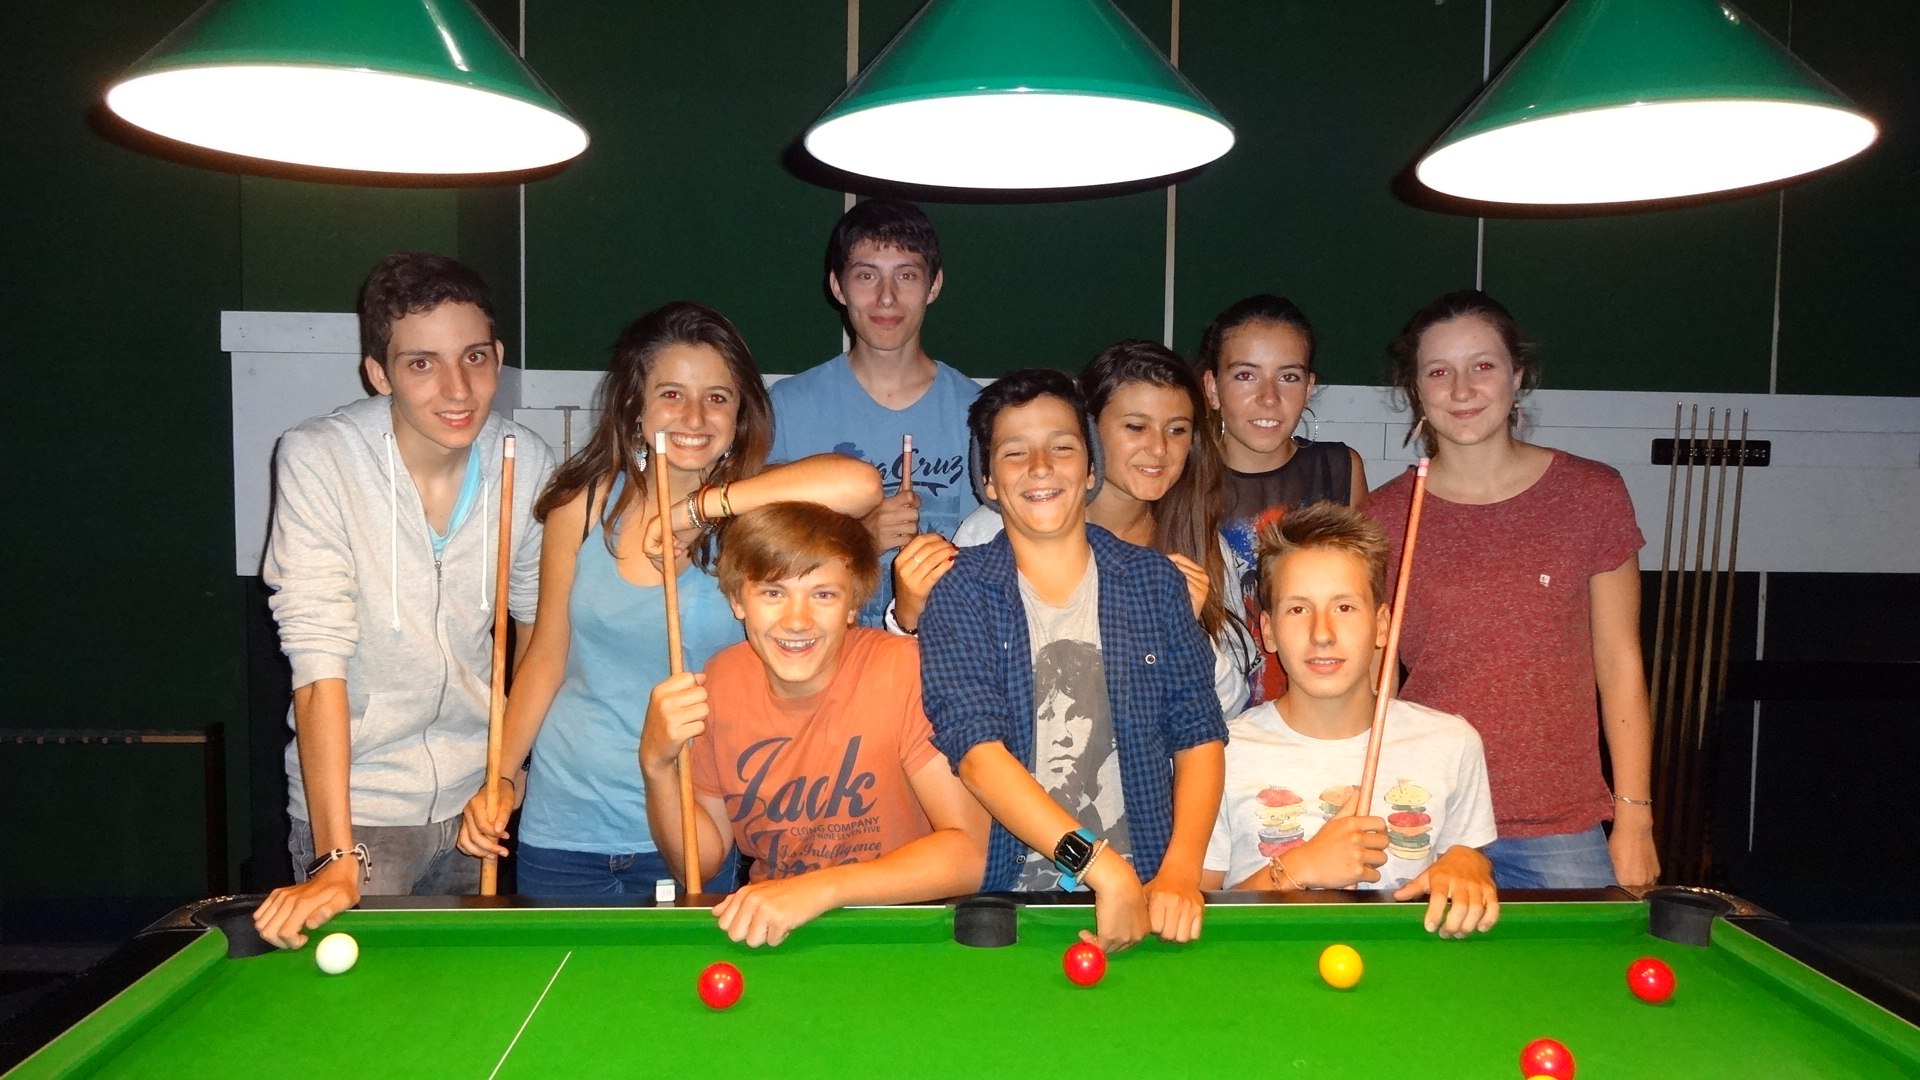 Game_of_pool_and_students